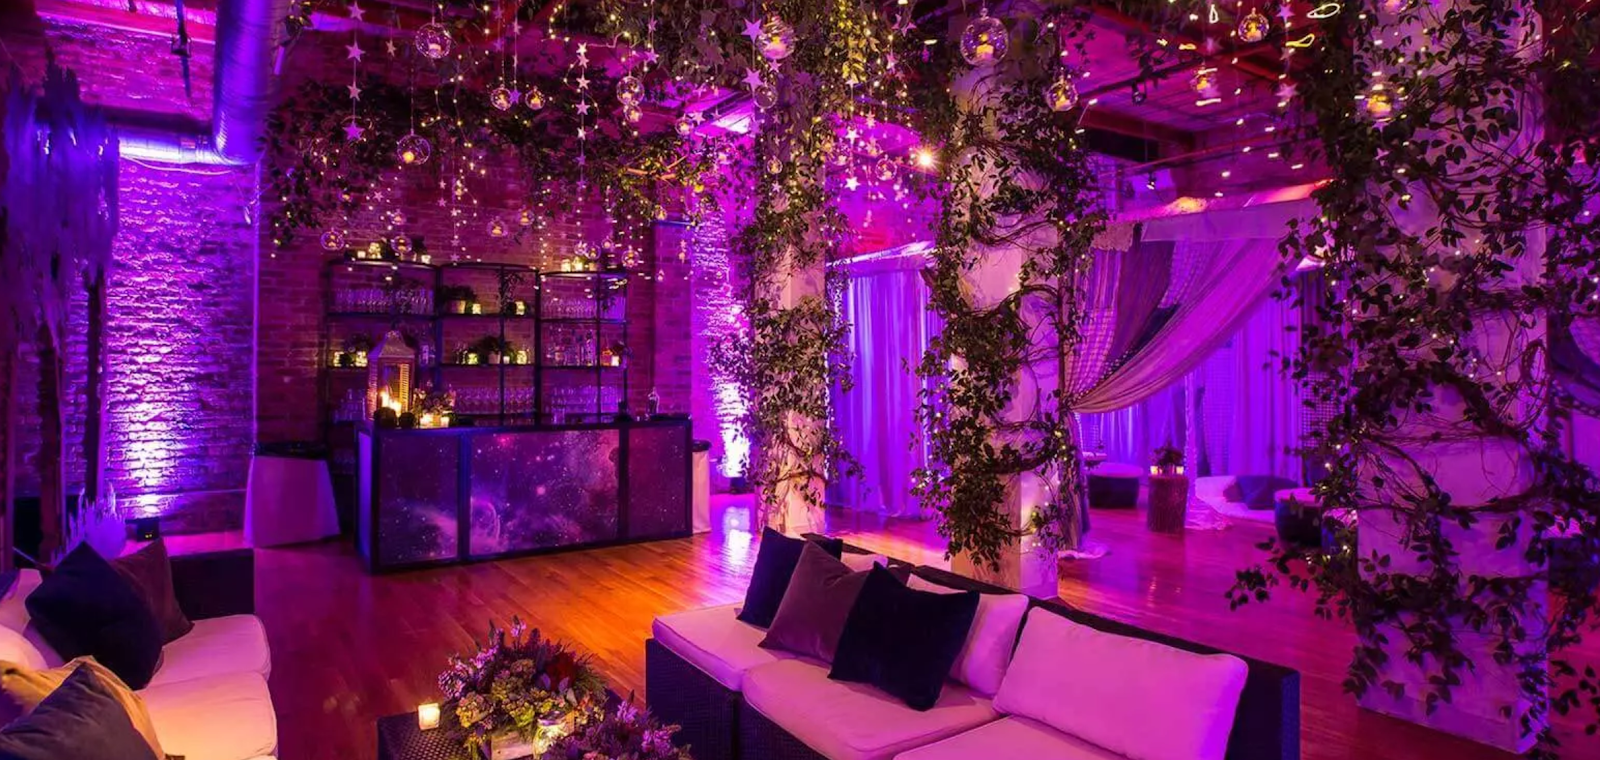 10 Chicago Event Locations That Will Wow Your Guests 4 png#keepProtocol.